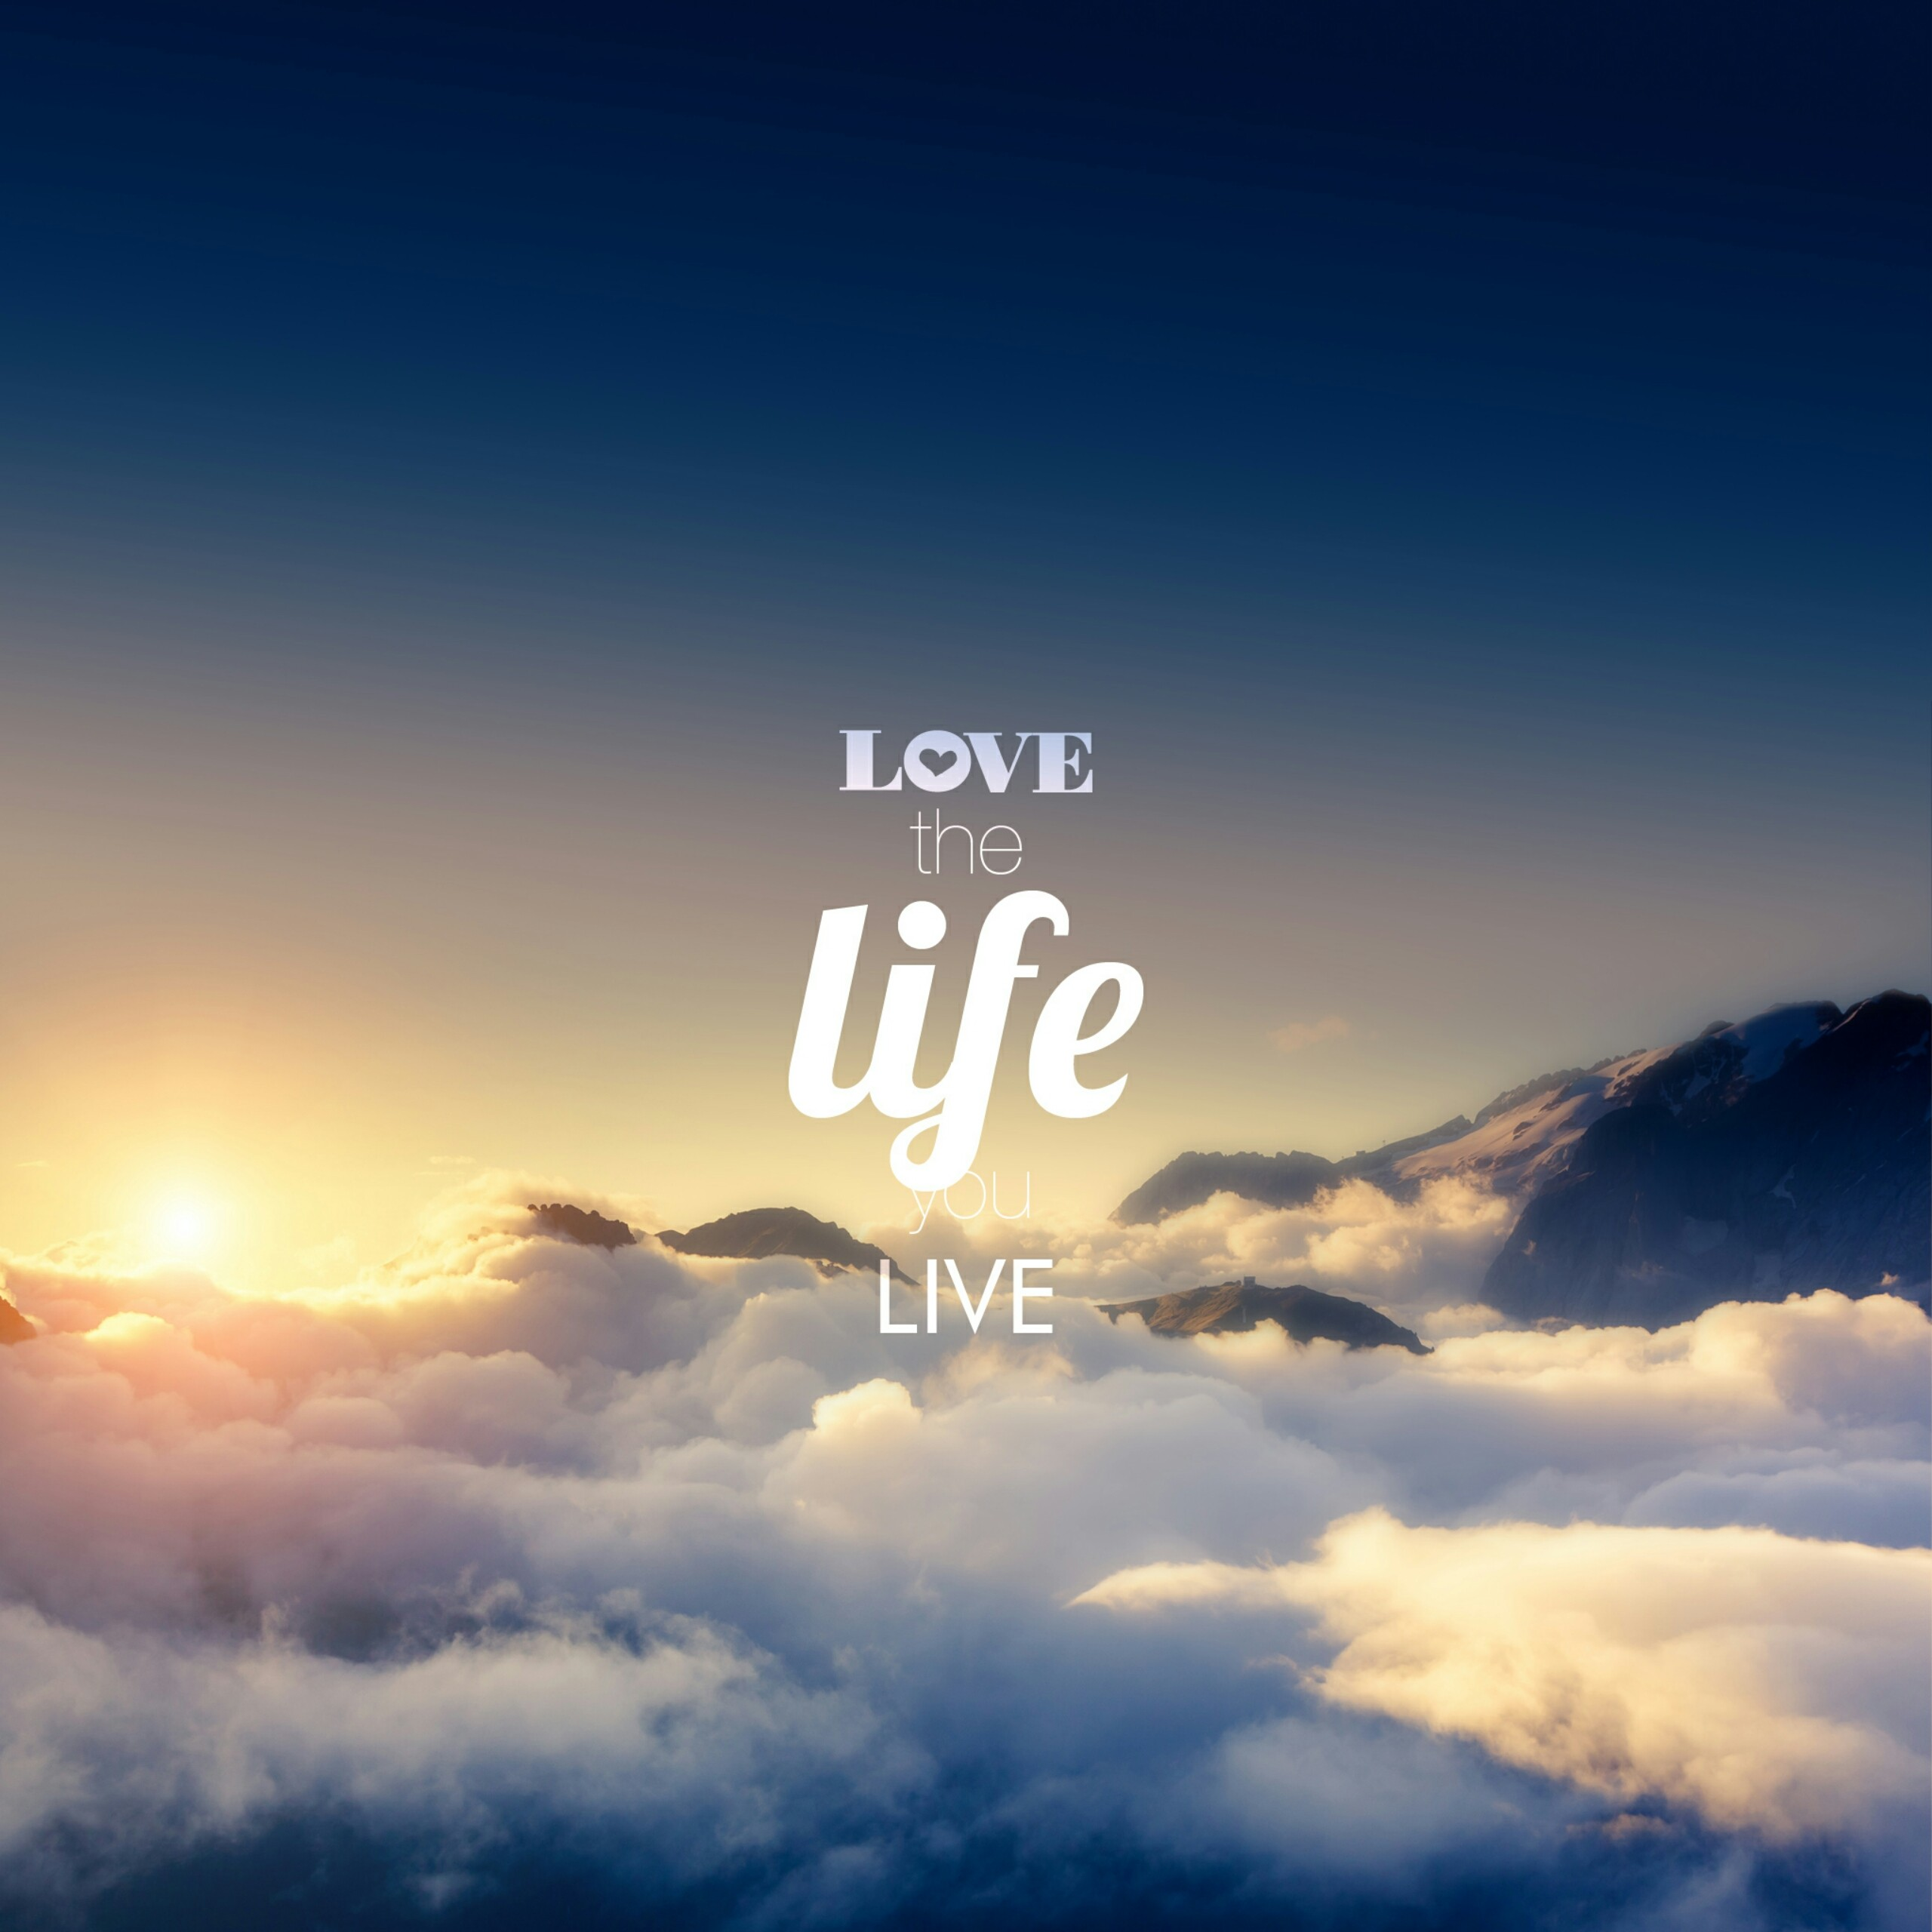 Wallpaper With Quotes On Life For Mobile: Love The Life You Live Quotes QHD Wallpaper 2560x2560